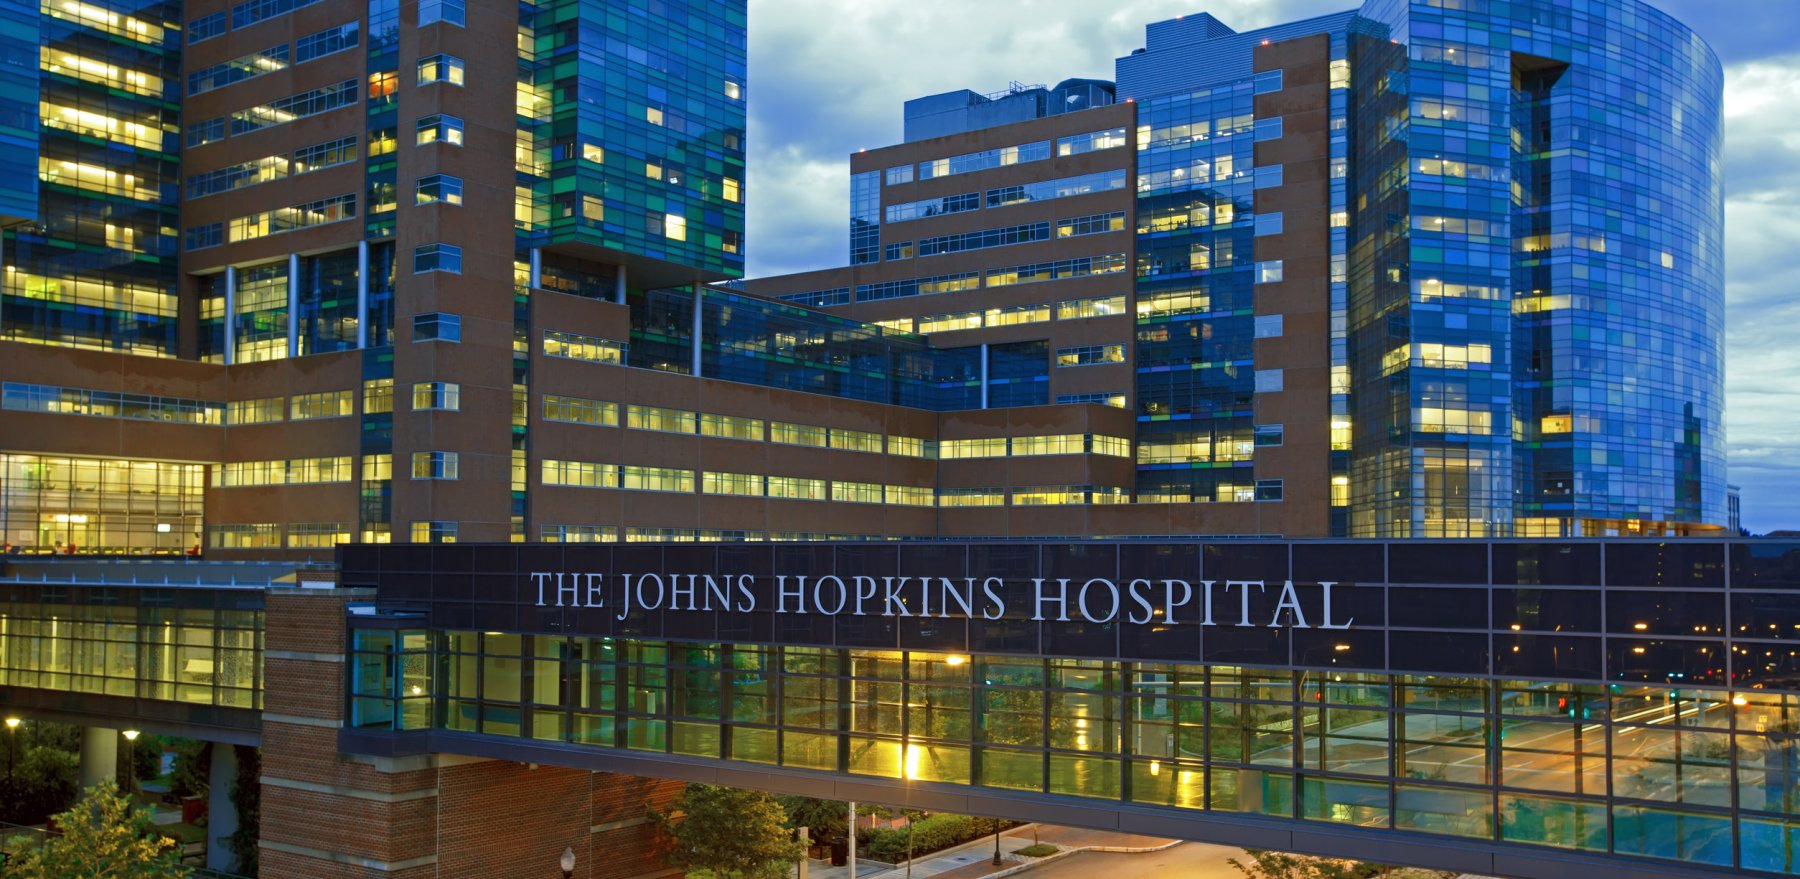 BALTIMORE - JUNE 28: The Johns Hopkins Hospital at night from Orleans Street on June 28, 2015 in Baltimore, Maryland. The Johns Hopkins Hospital is a teaching hospital and biomedical research facility.